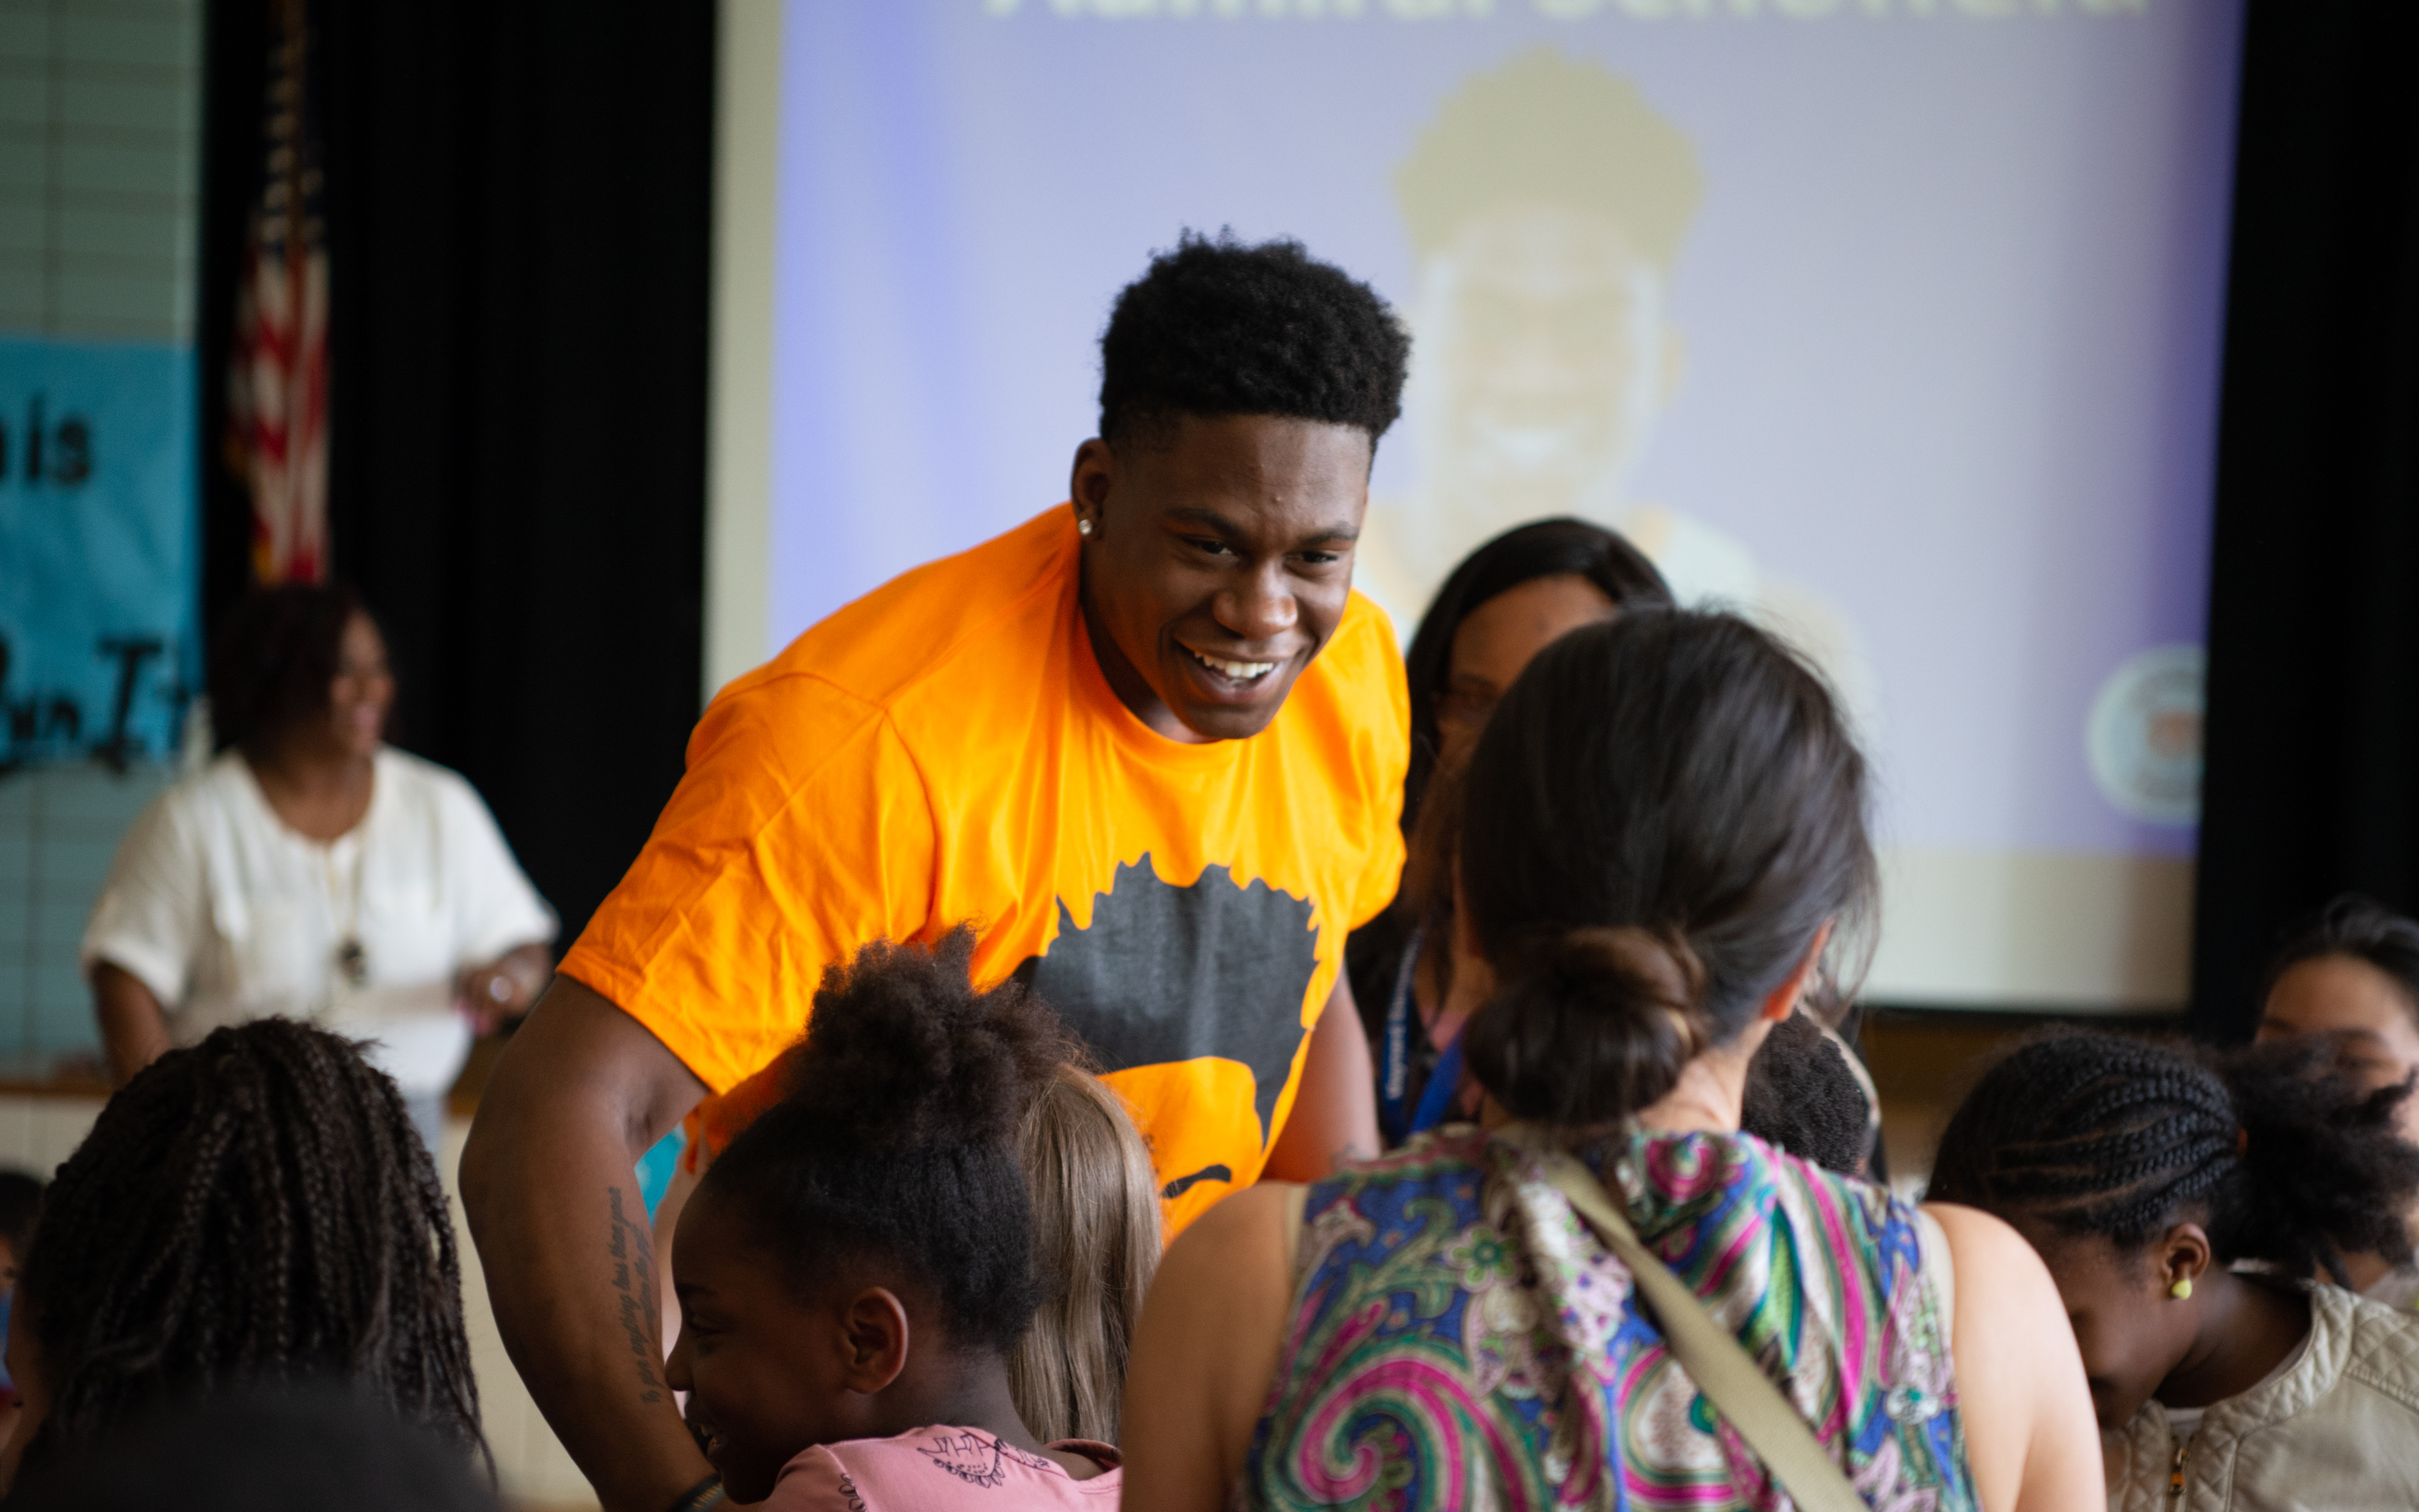 Former University of Tennessee basketball player Admiral Schofield talks to Maynard Elementary students during a visit on April 11, 2019.